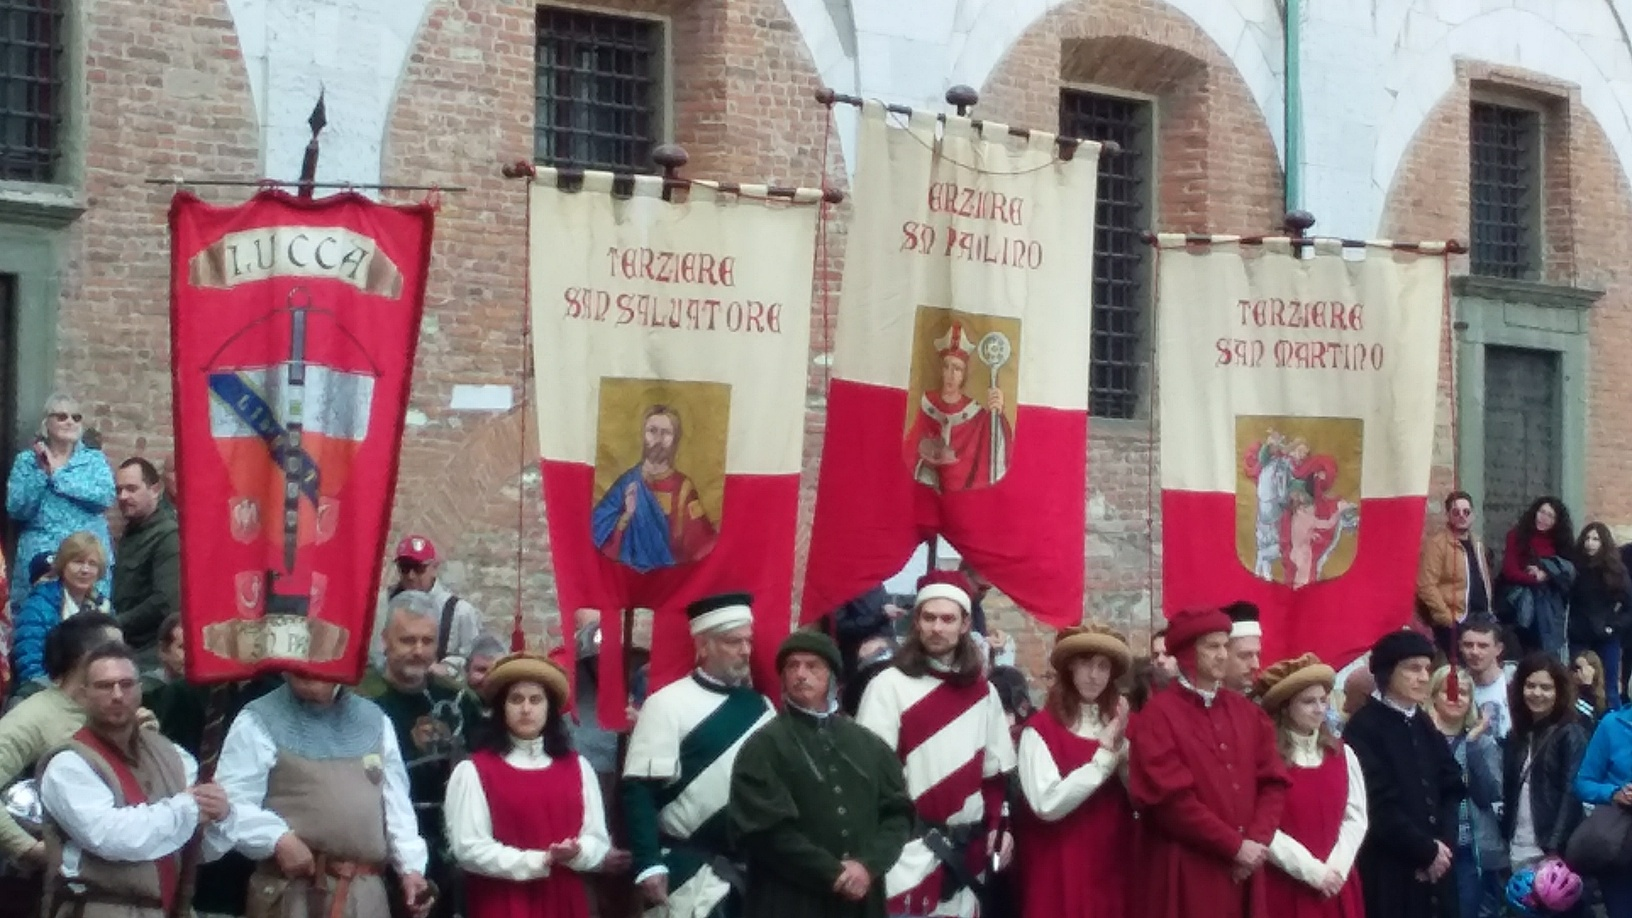 These banners represent Lucca and the three terziere into which it was divided in the 1400s- each named for the major church in the neighborhood (San Salvatore, San Paolino, and San Martino).